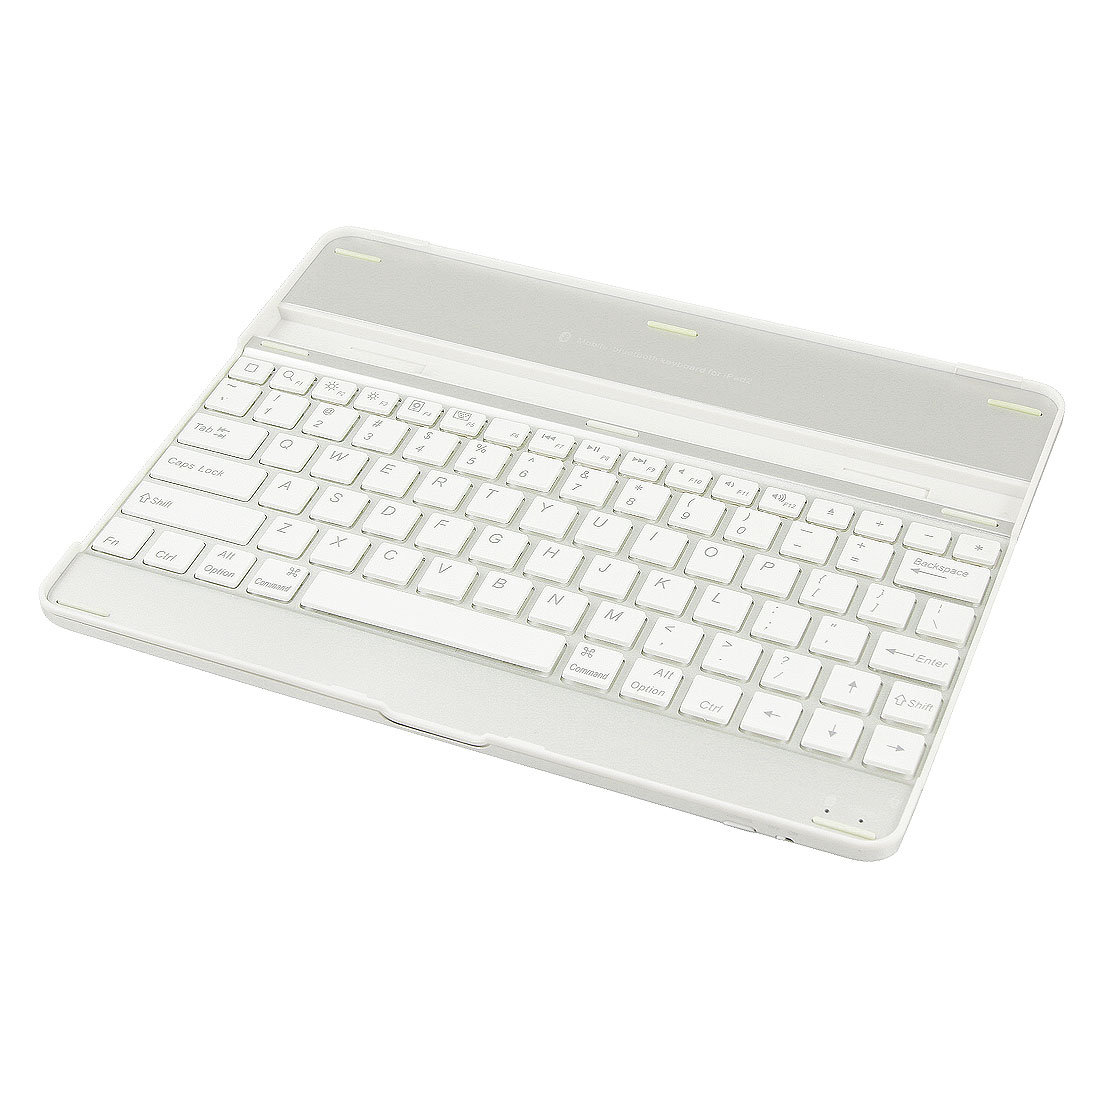 White Wireless bluetooth Keyboard for Apple iPad 2nd 3rd Generation PC